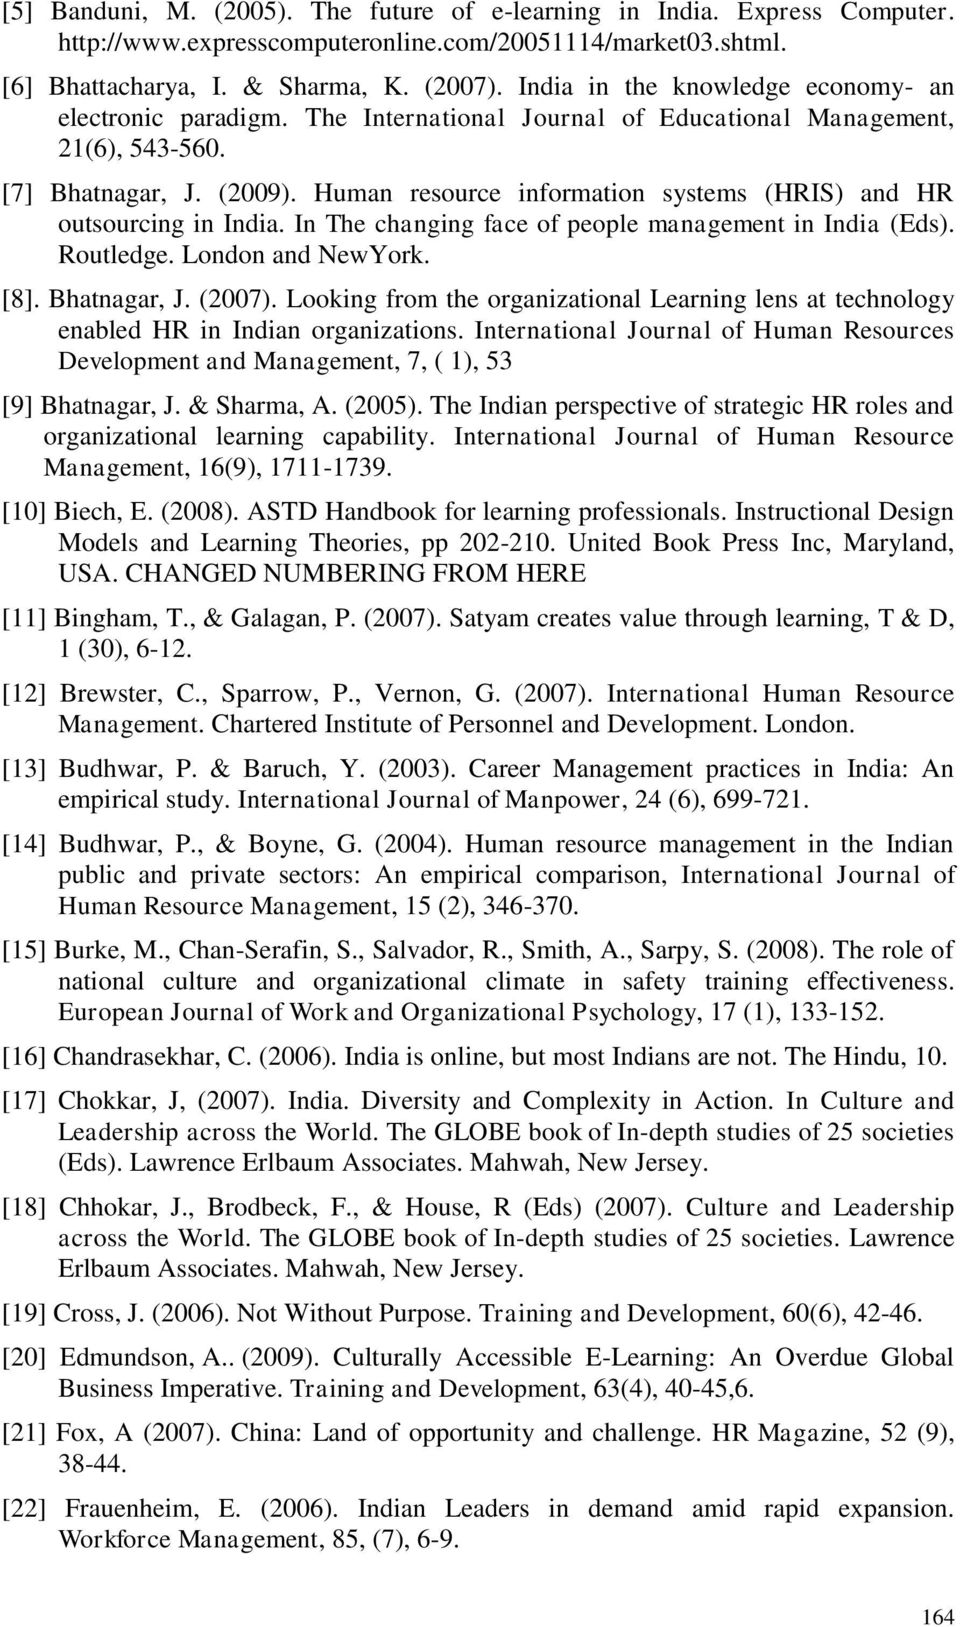 Human resource information systems (HRIS) and HR outsourcing in India. In The changing face of people management in India (Eds). Routledge. London and NewYork. [8]. Bhatnagar, J. (2007).